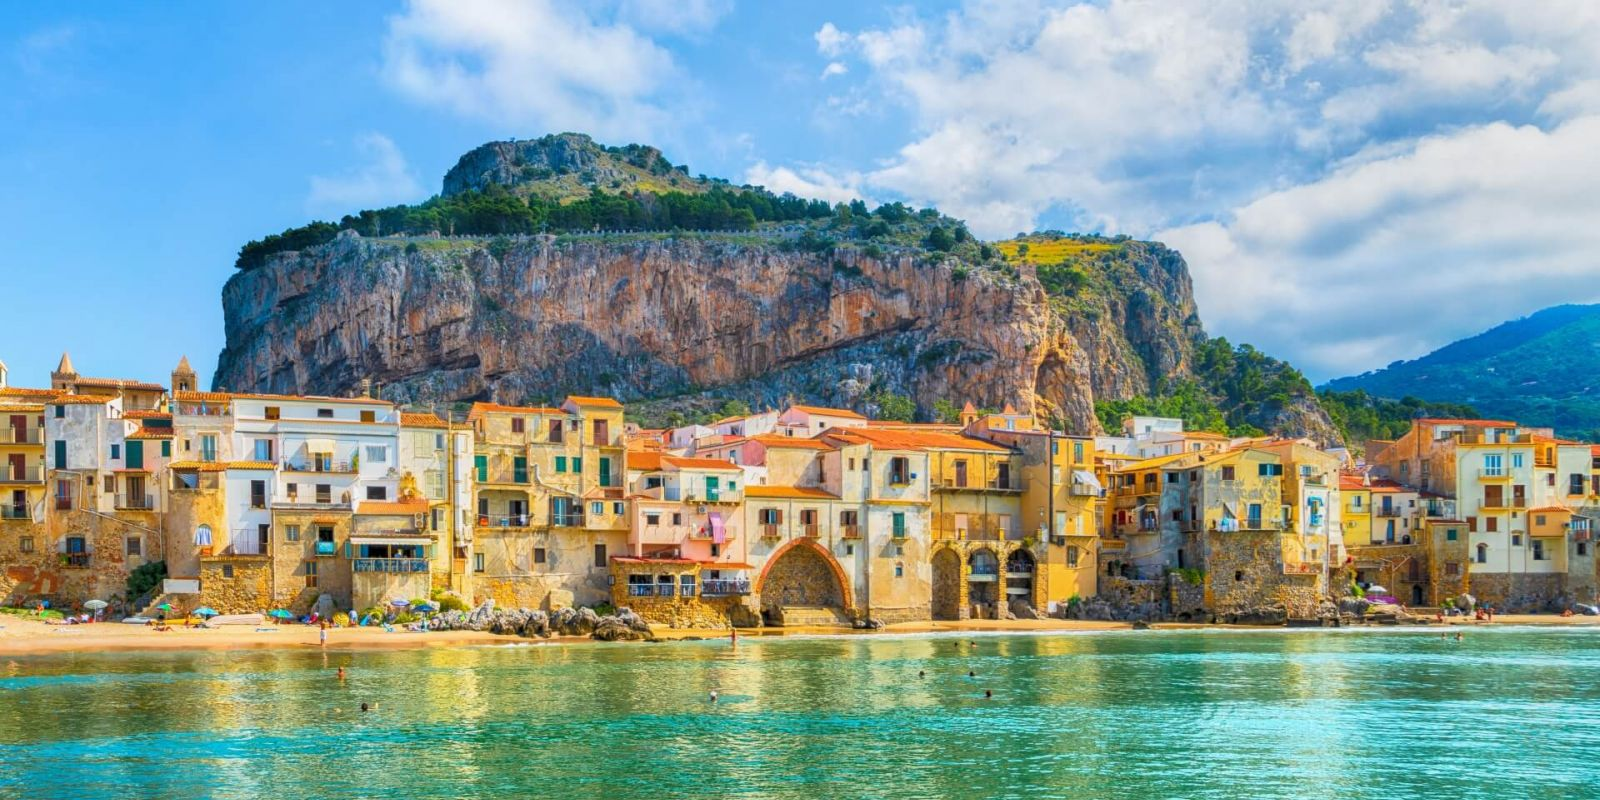 https://www.talamare.com/medias/The medieval village of Cefalu as seen during a Sicily yacht charter